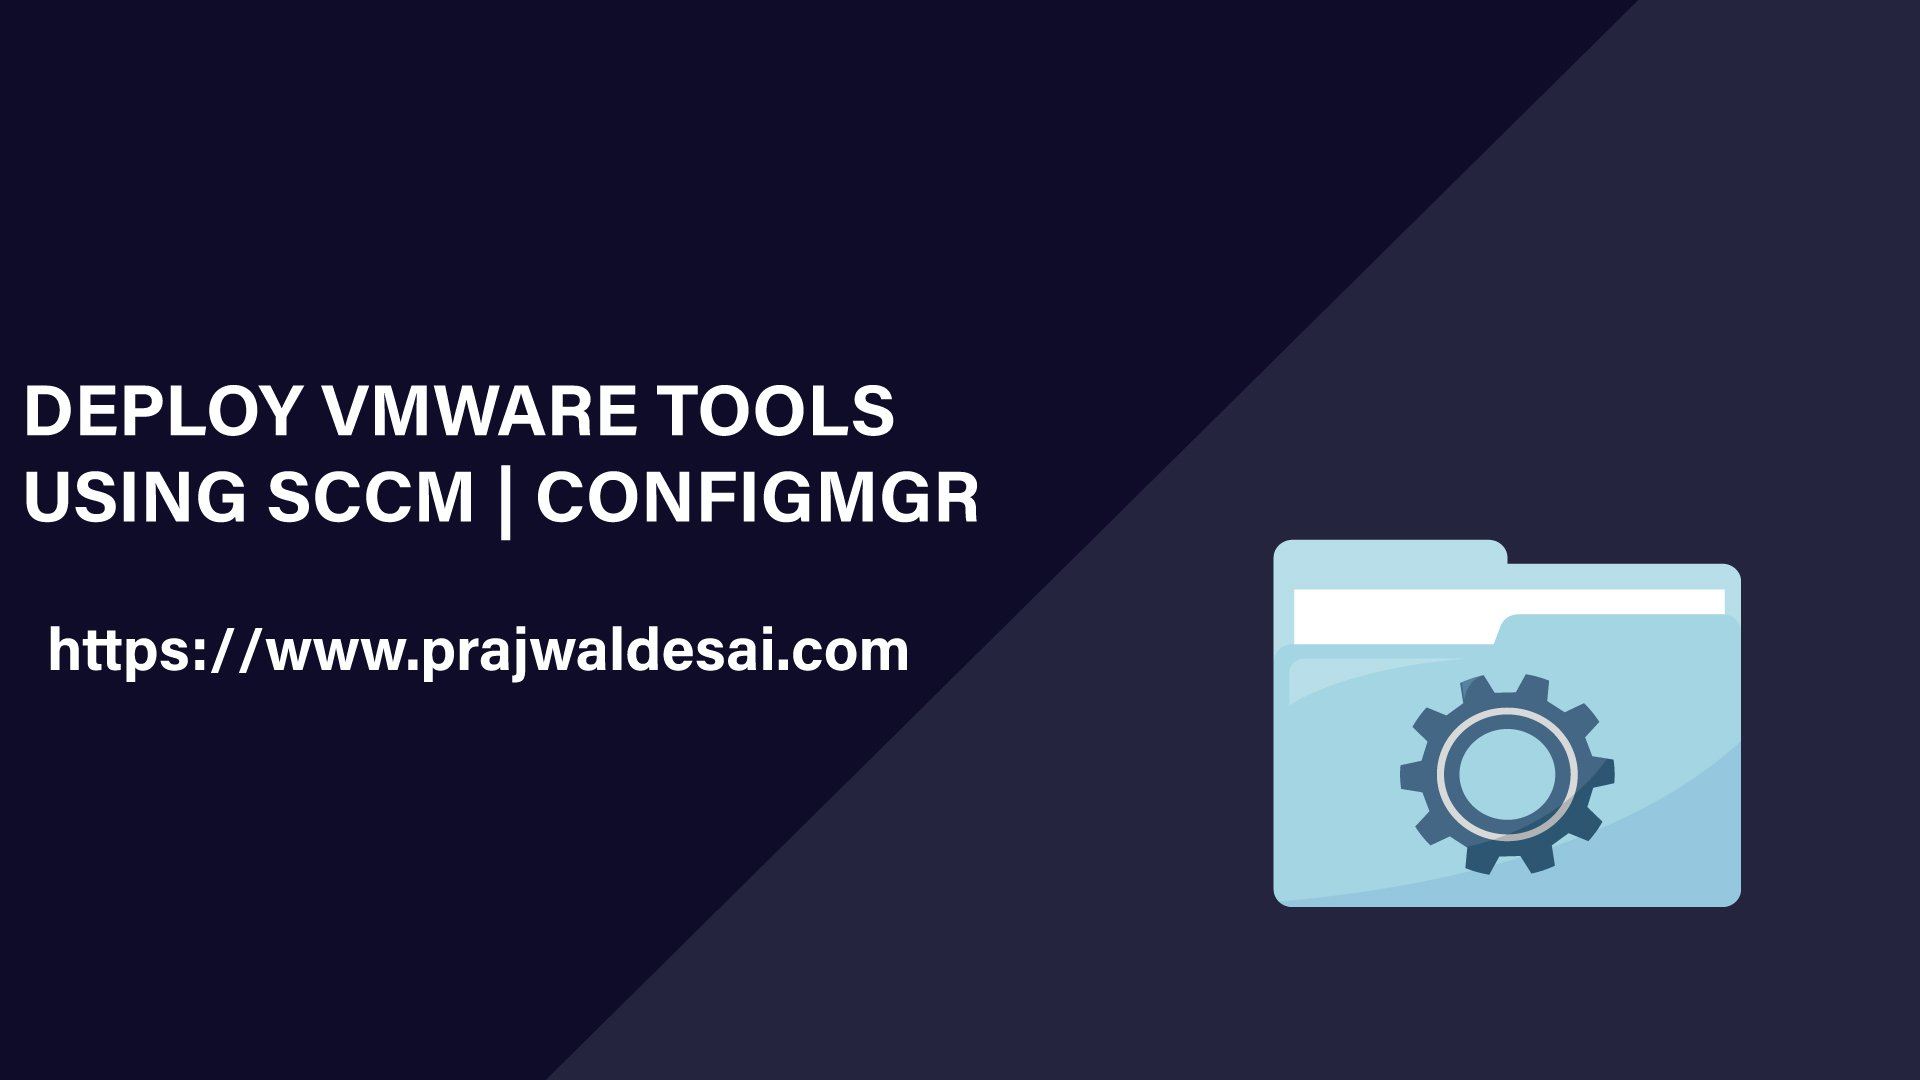 Deploy VMware Tools using SCCM